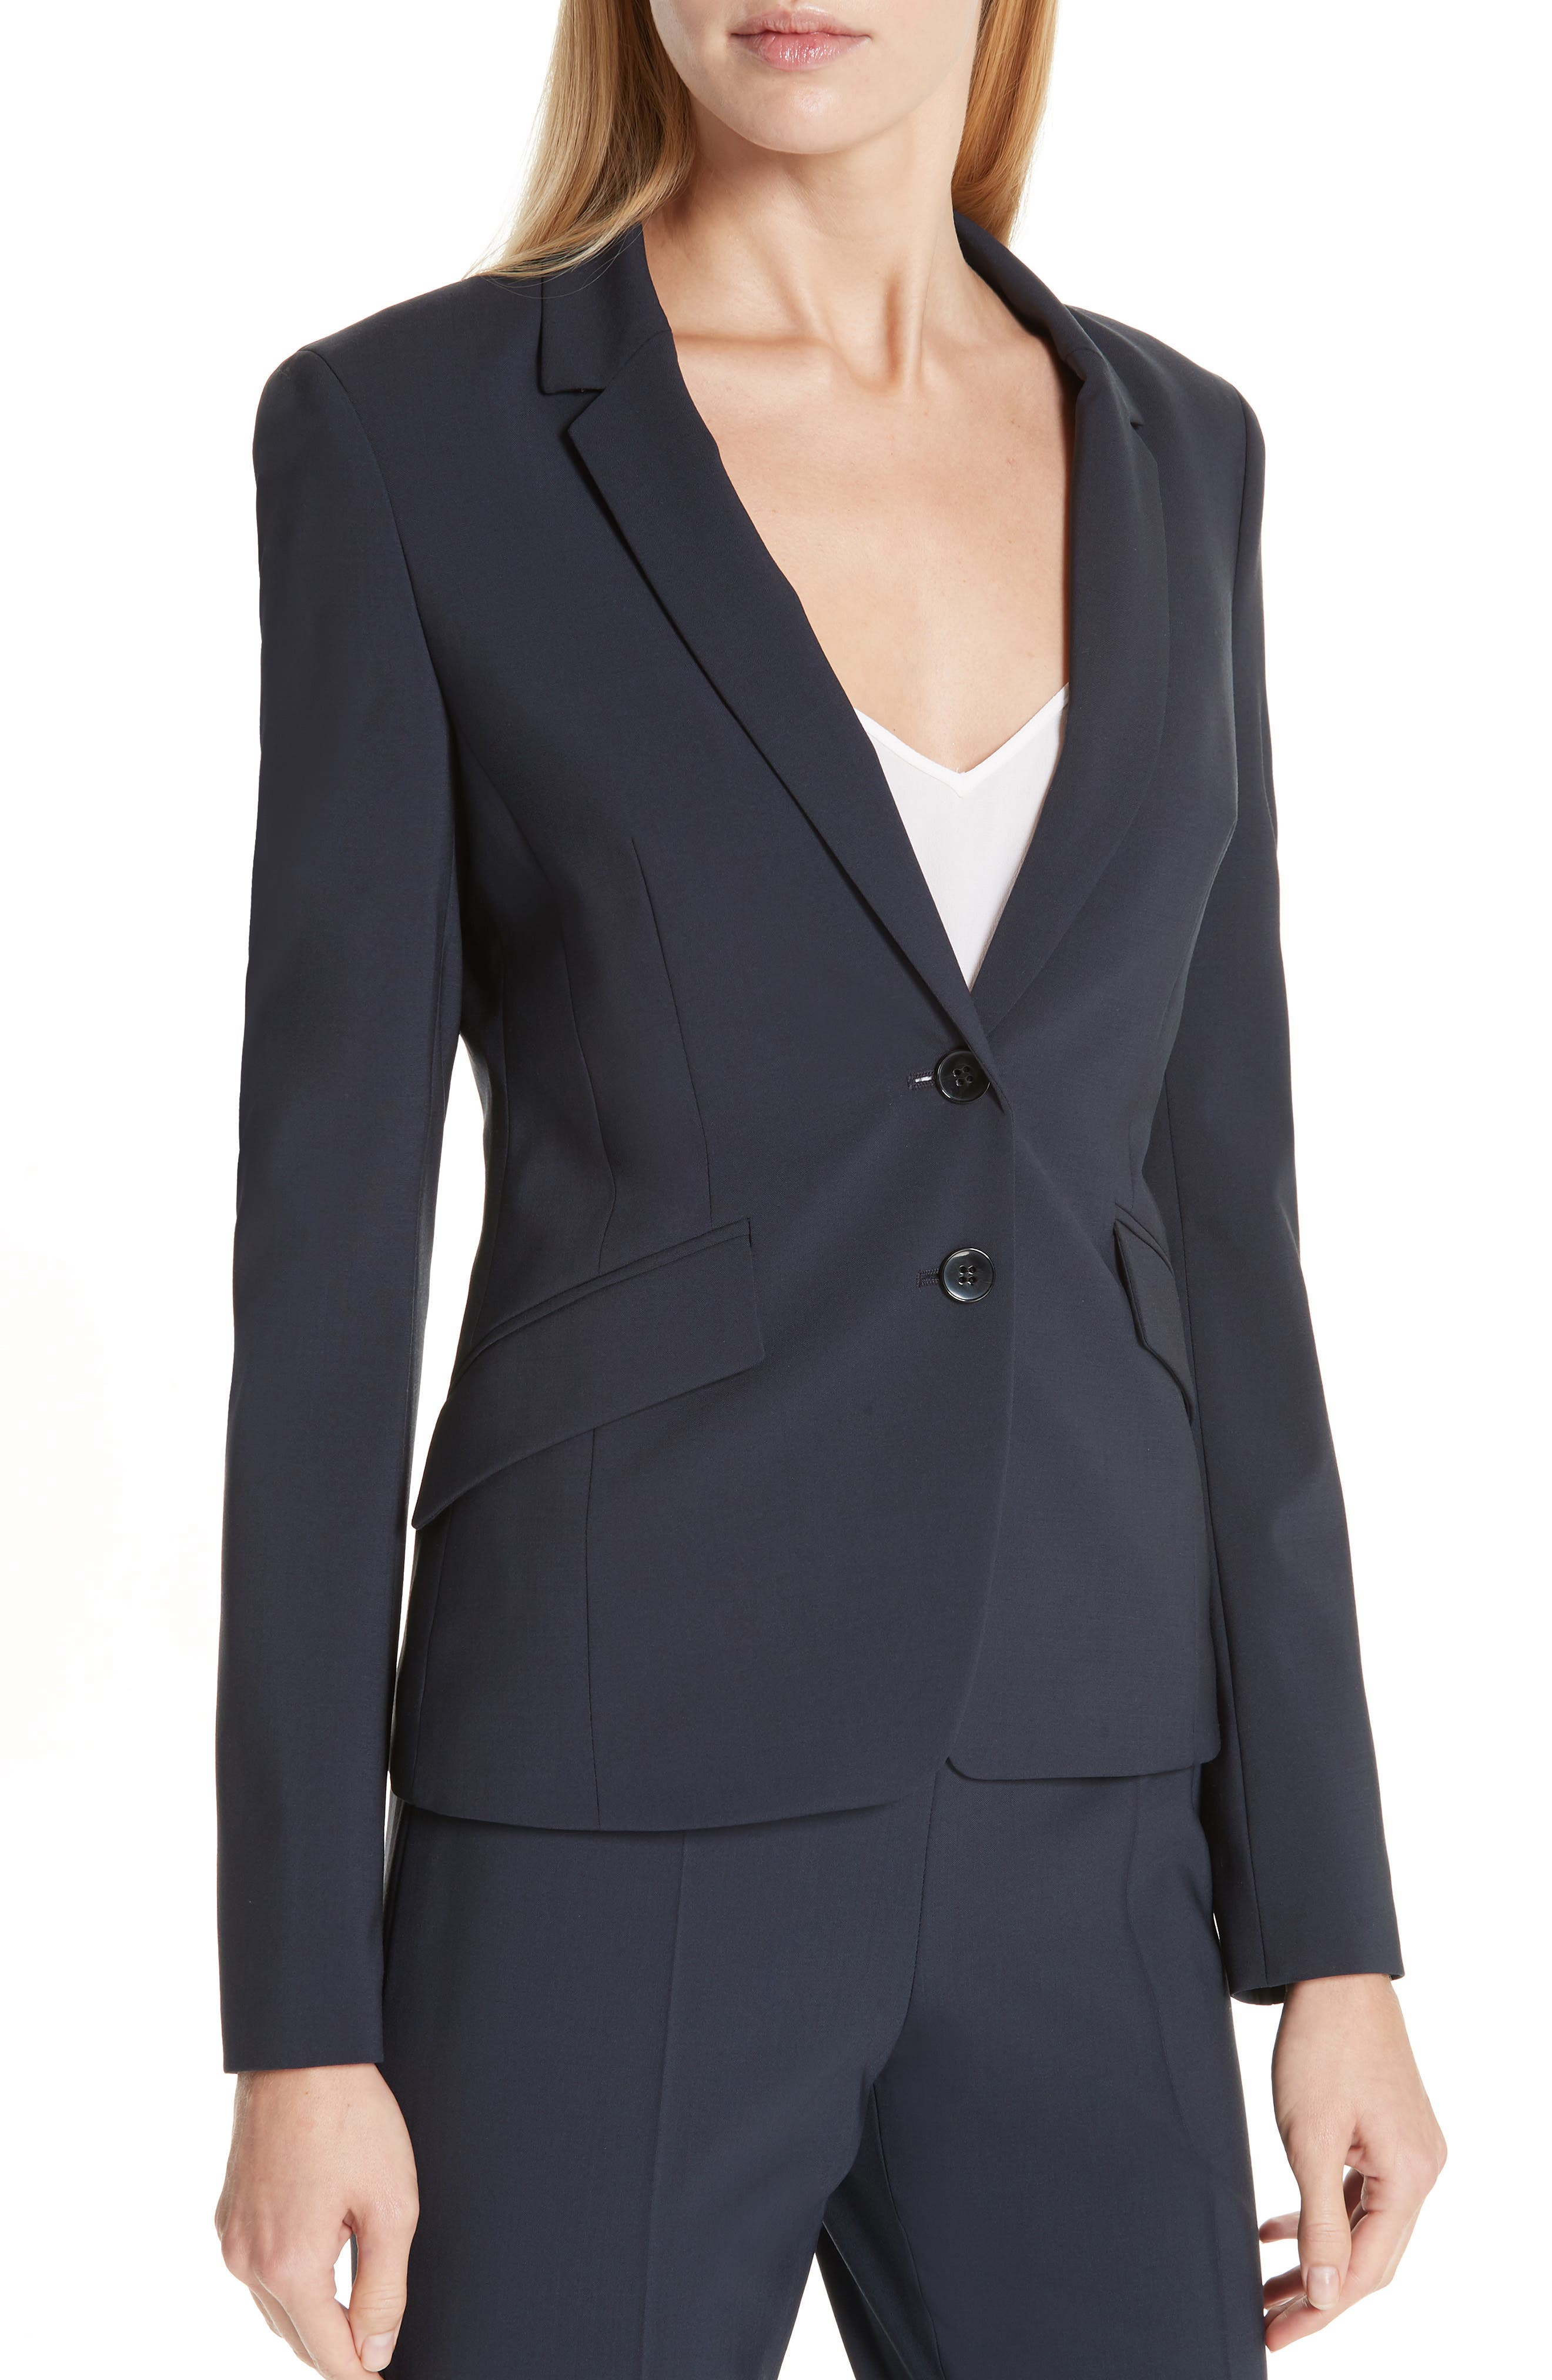 BOSS,                             Jiletara Stretch Wool Jacket,                             Alternate thumbnail 4, color,                             NAVY